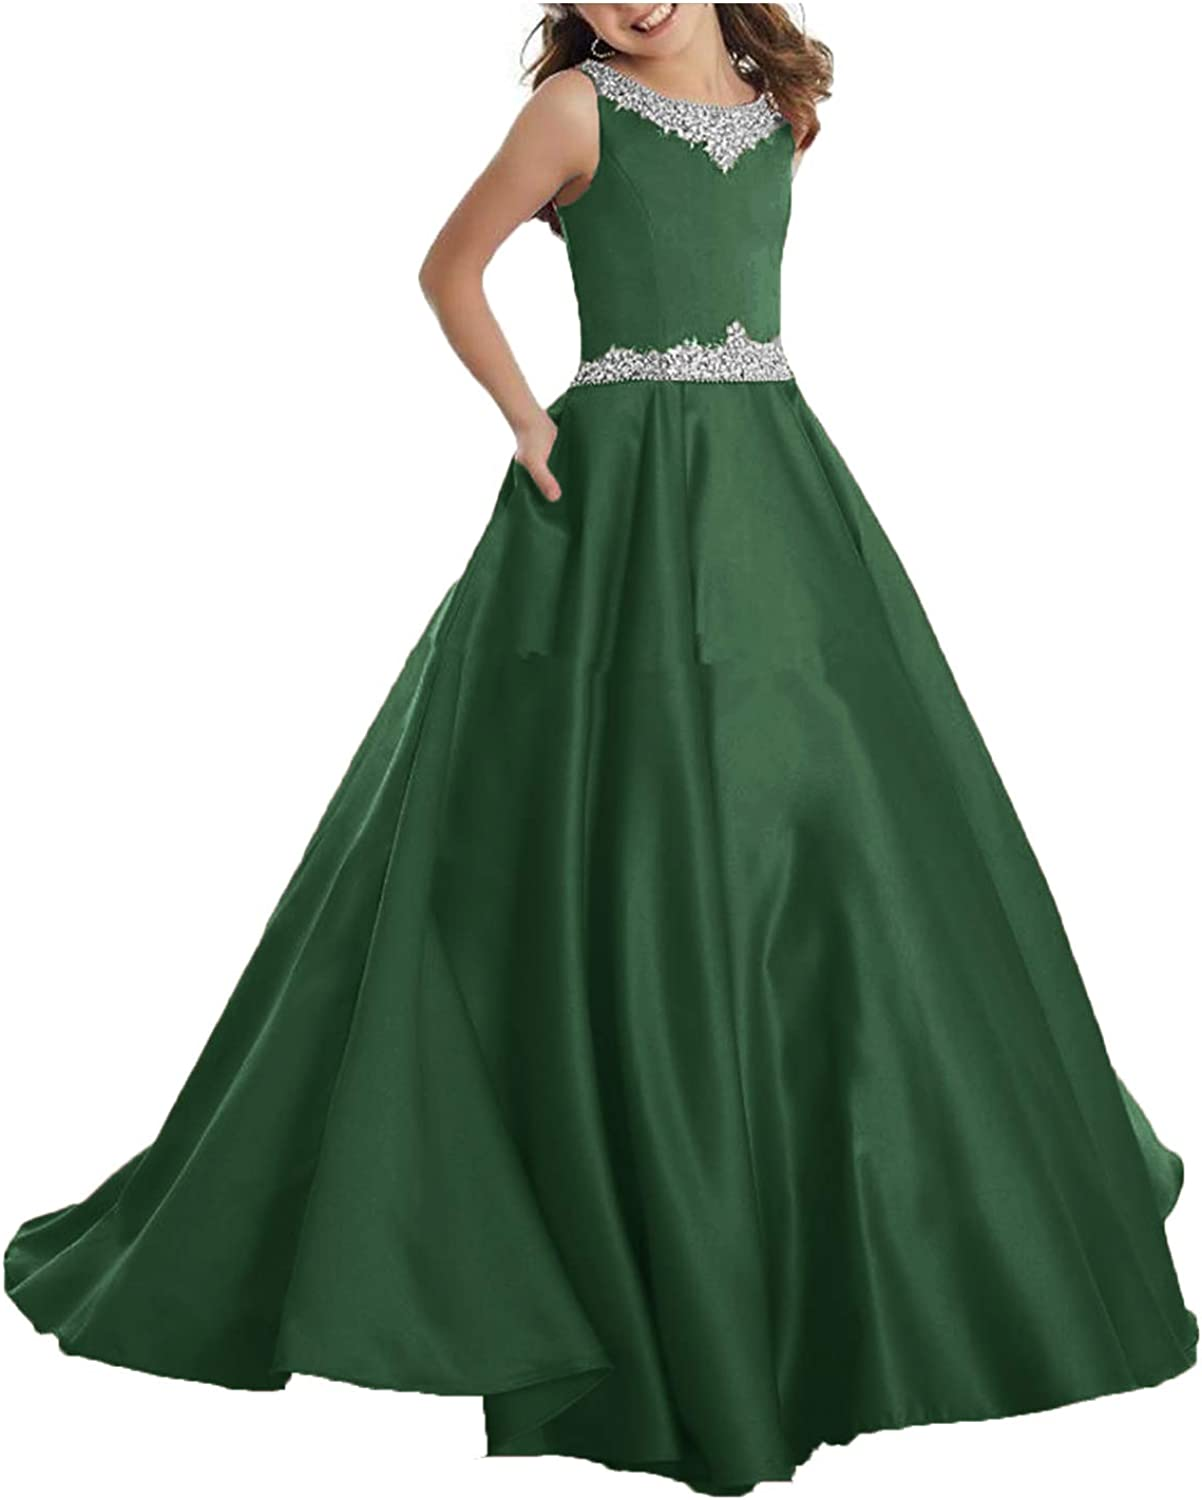 Ubride Satin Columbus Mall Flower Girls Dresses Crystals Beads Max 83% OFF Toddlers Birthd